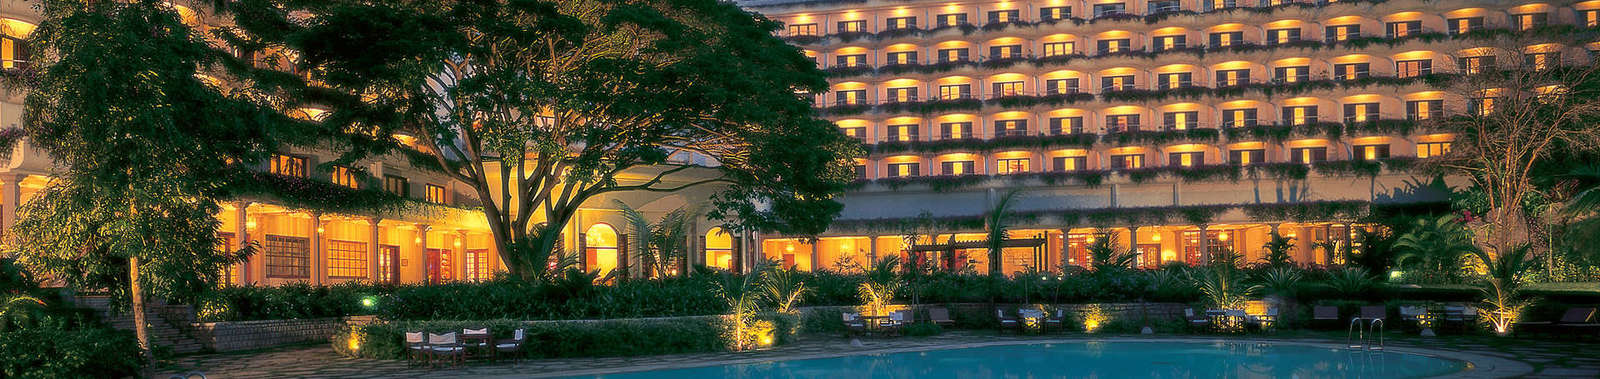 1OberoiBangalorebengaluru-india1